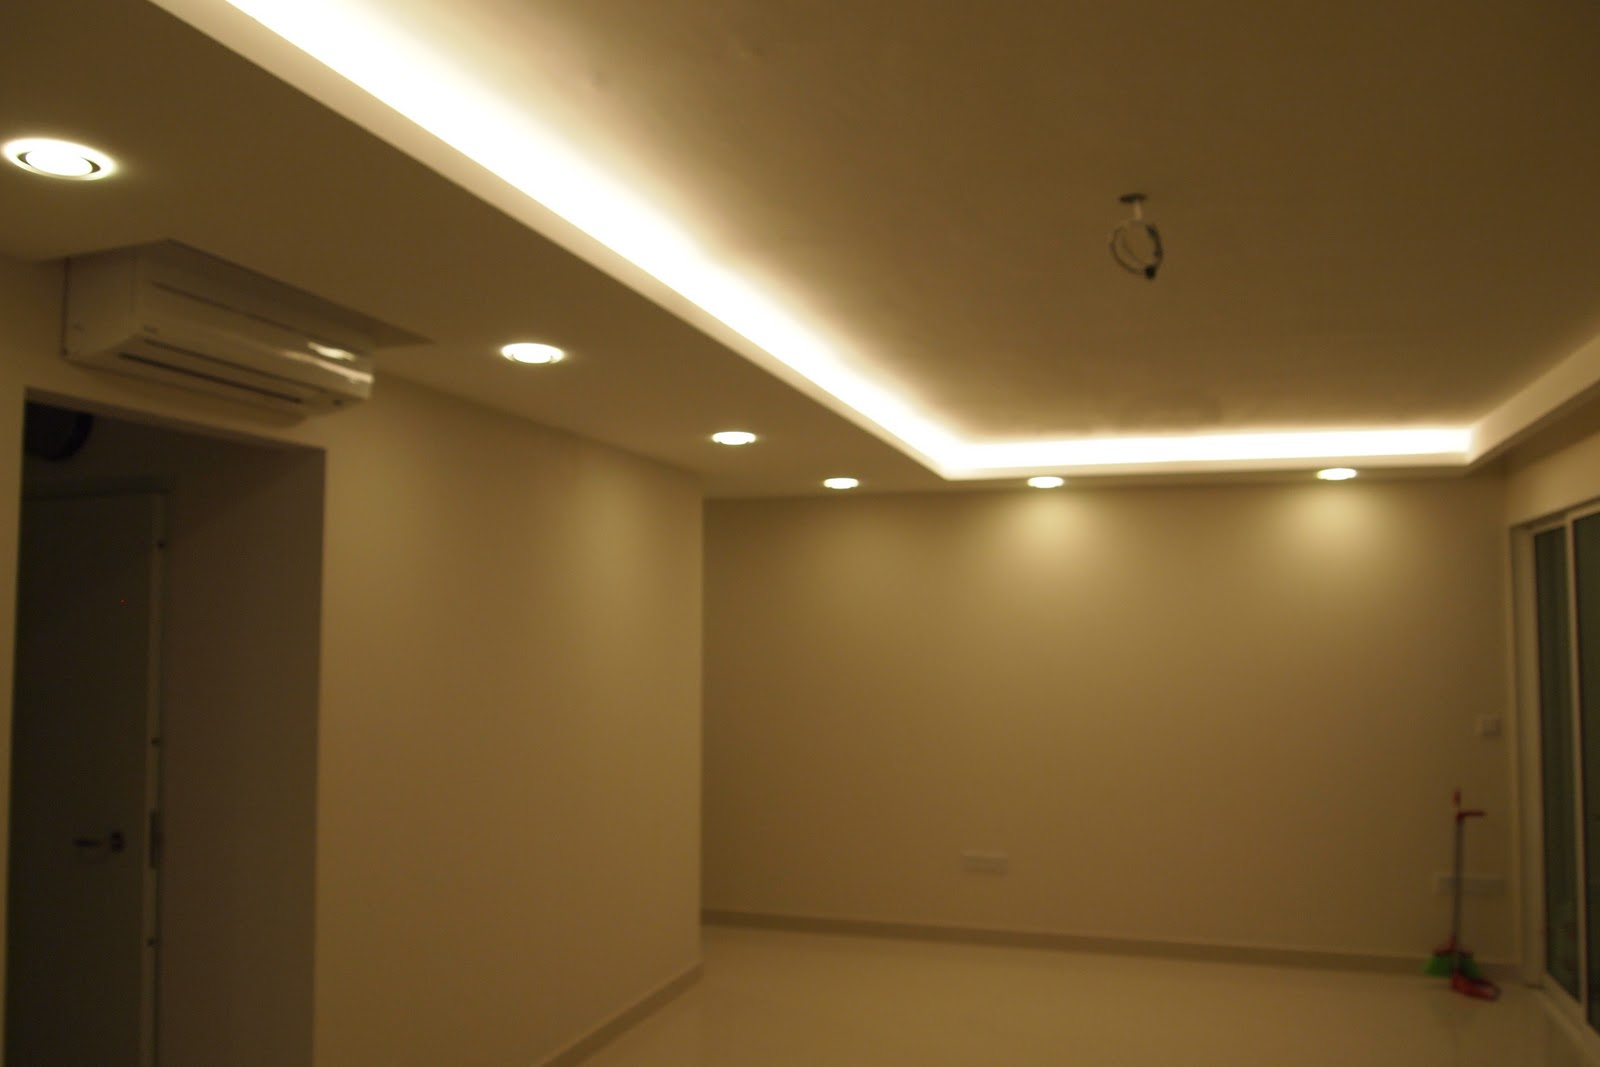 35 Best Images About Led Strip Lighting Ideas On Pinterest: Cove Lighting Ideas Awesome Home Design